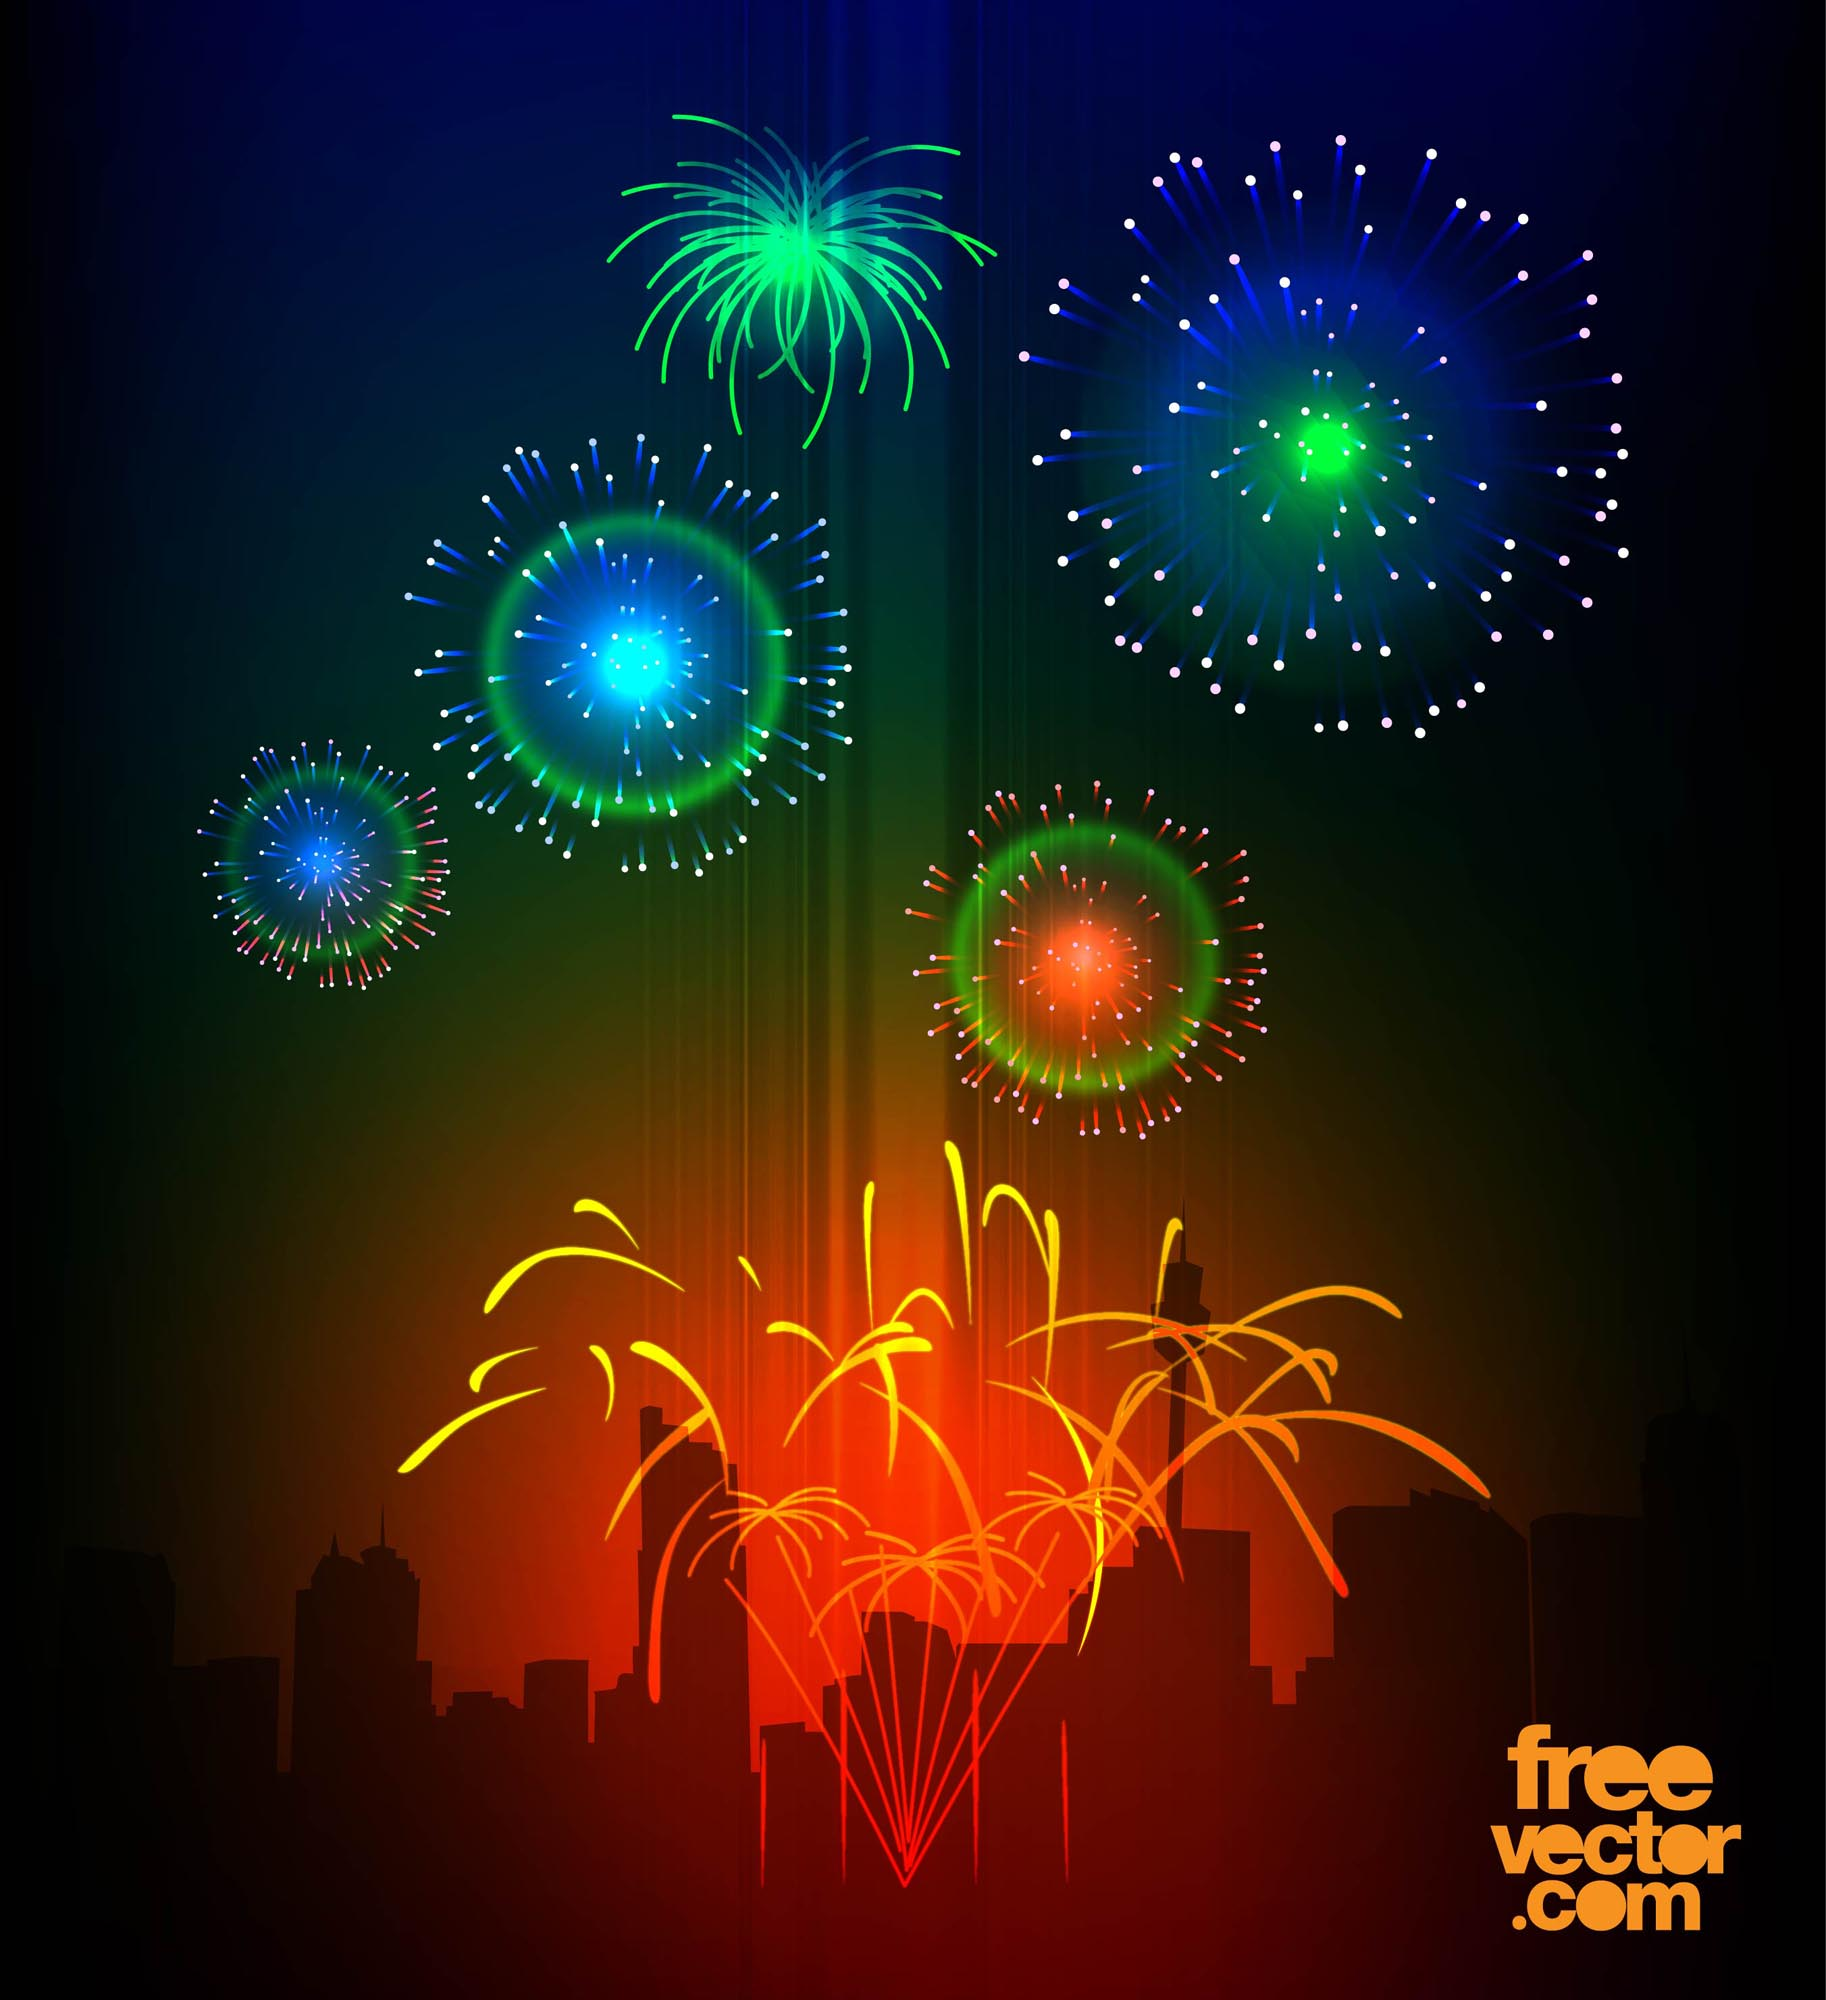 Weekly Calendar Colorful : Vector fireworks art graphics freevector